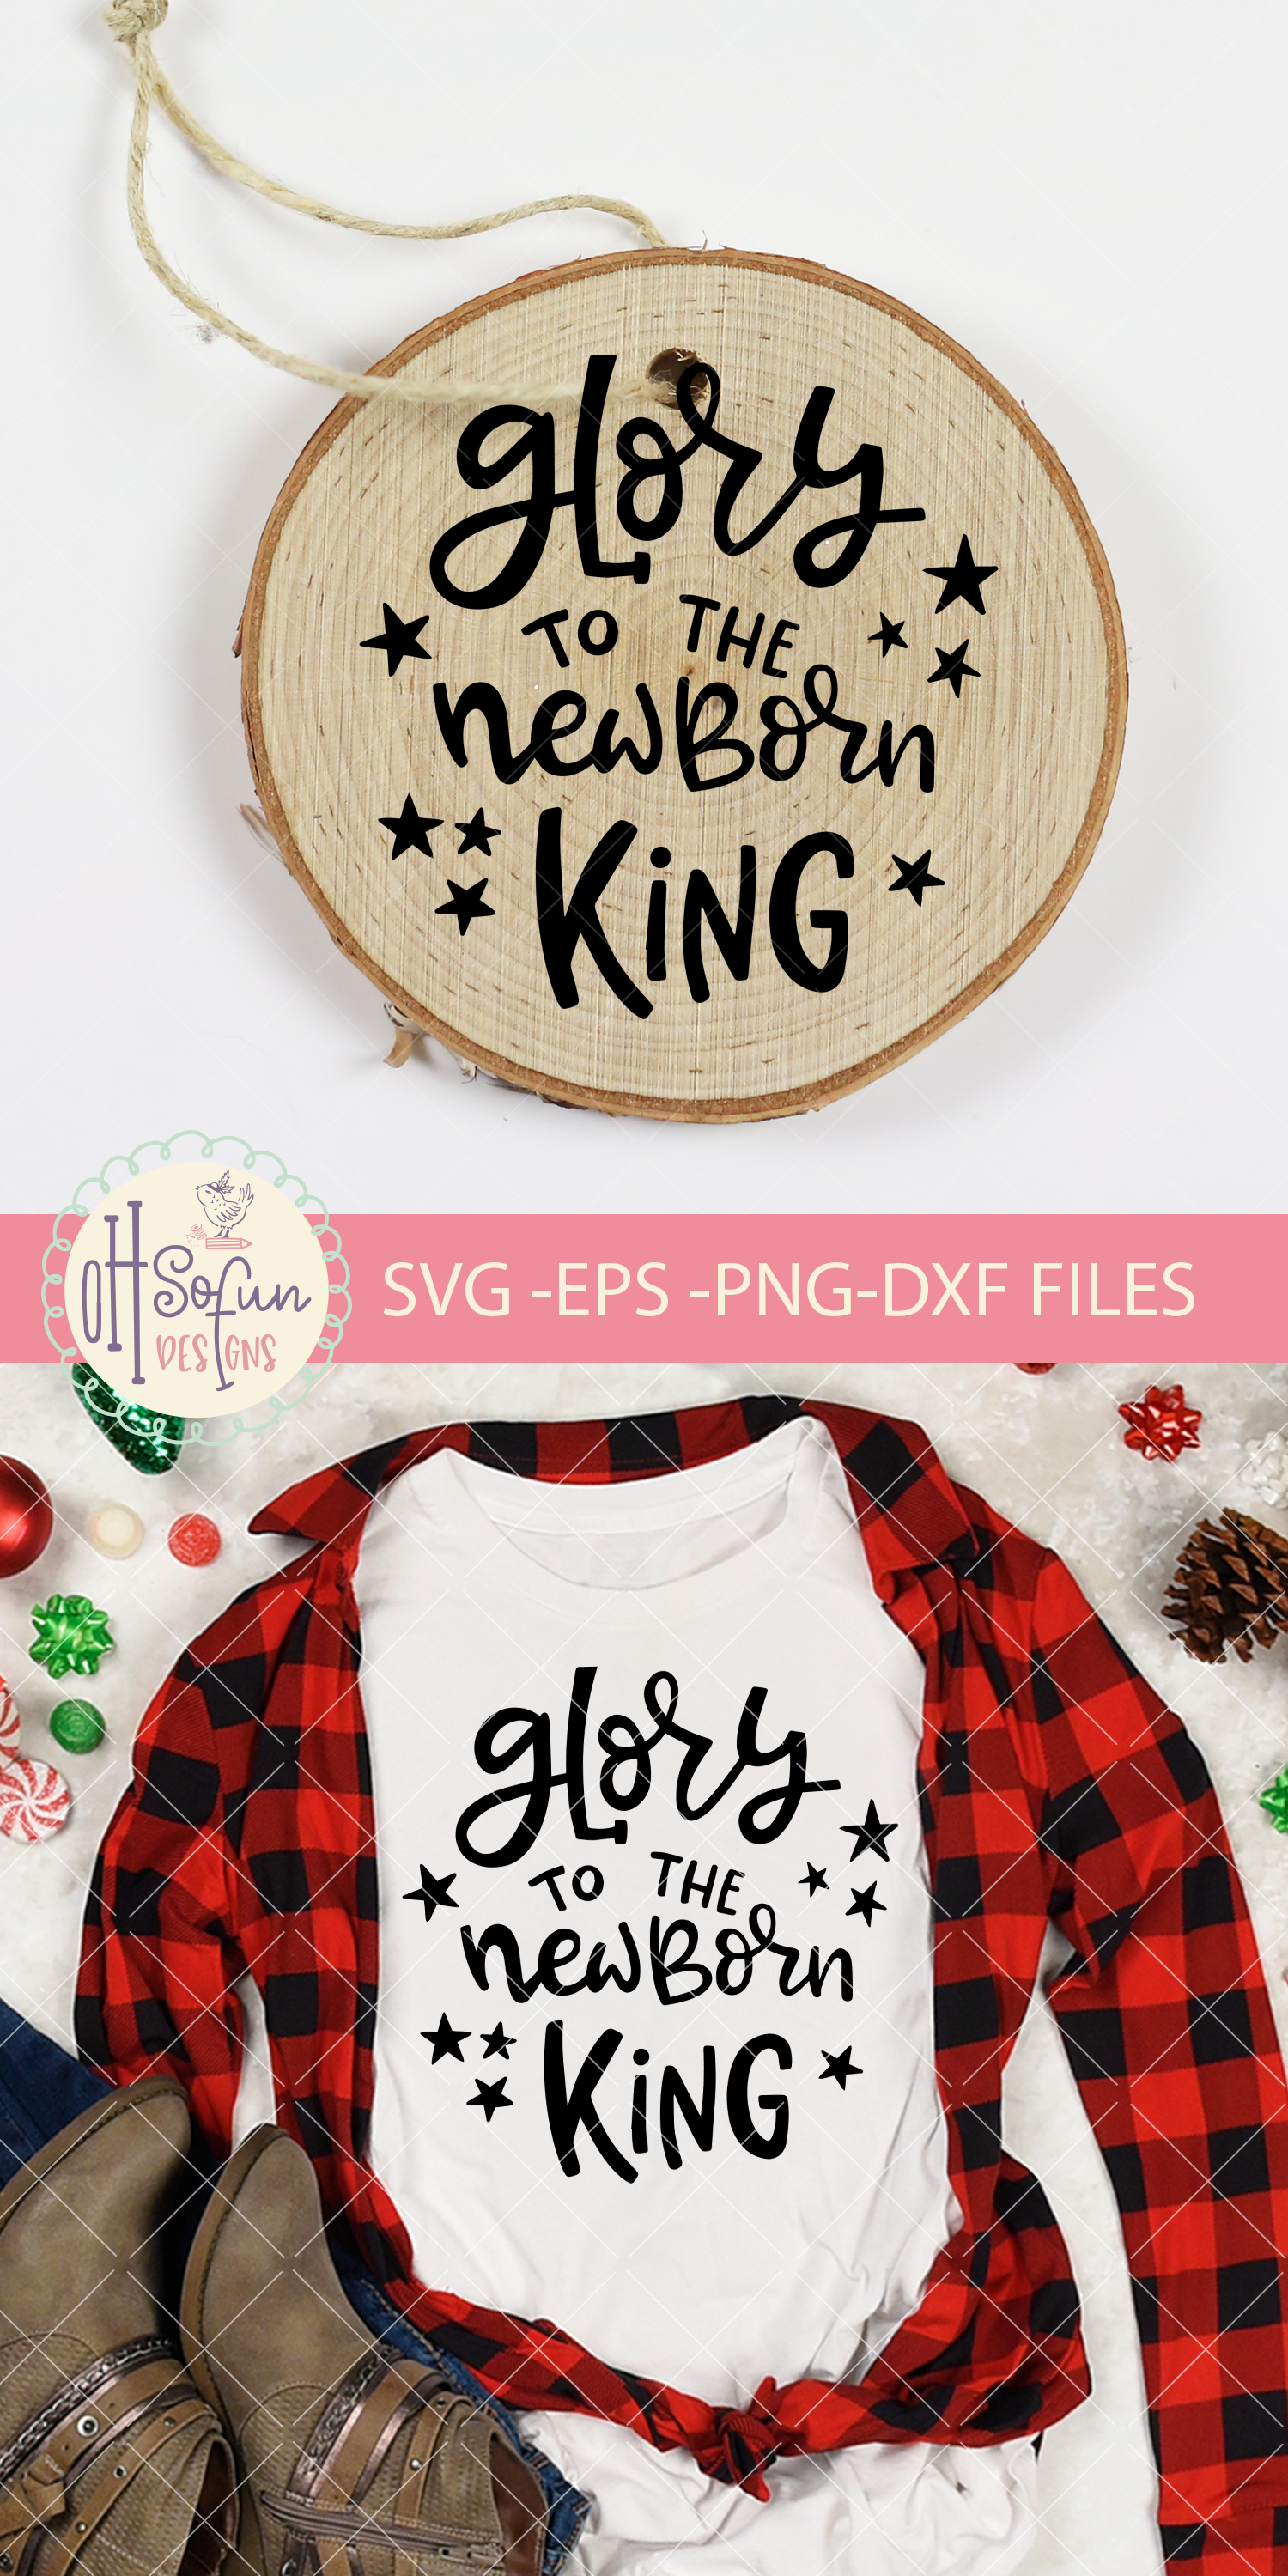 Glory to the newborn king, hand lettering Christmas SVG example image 2